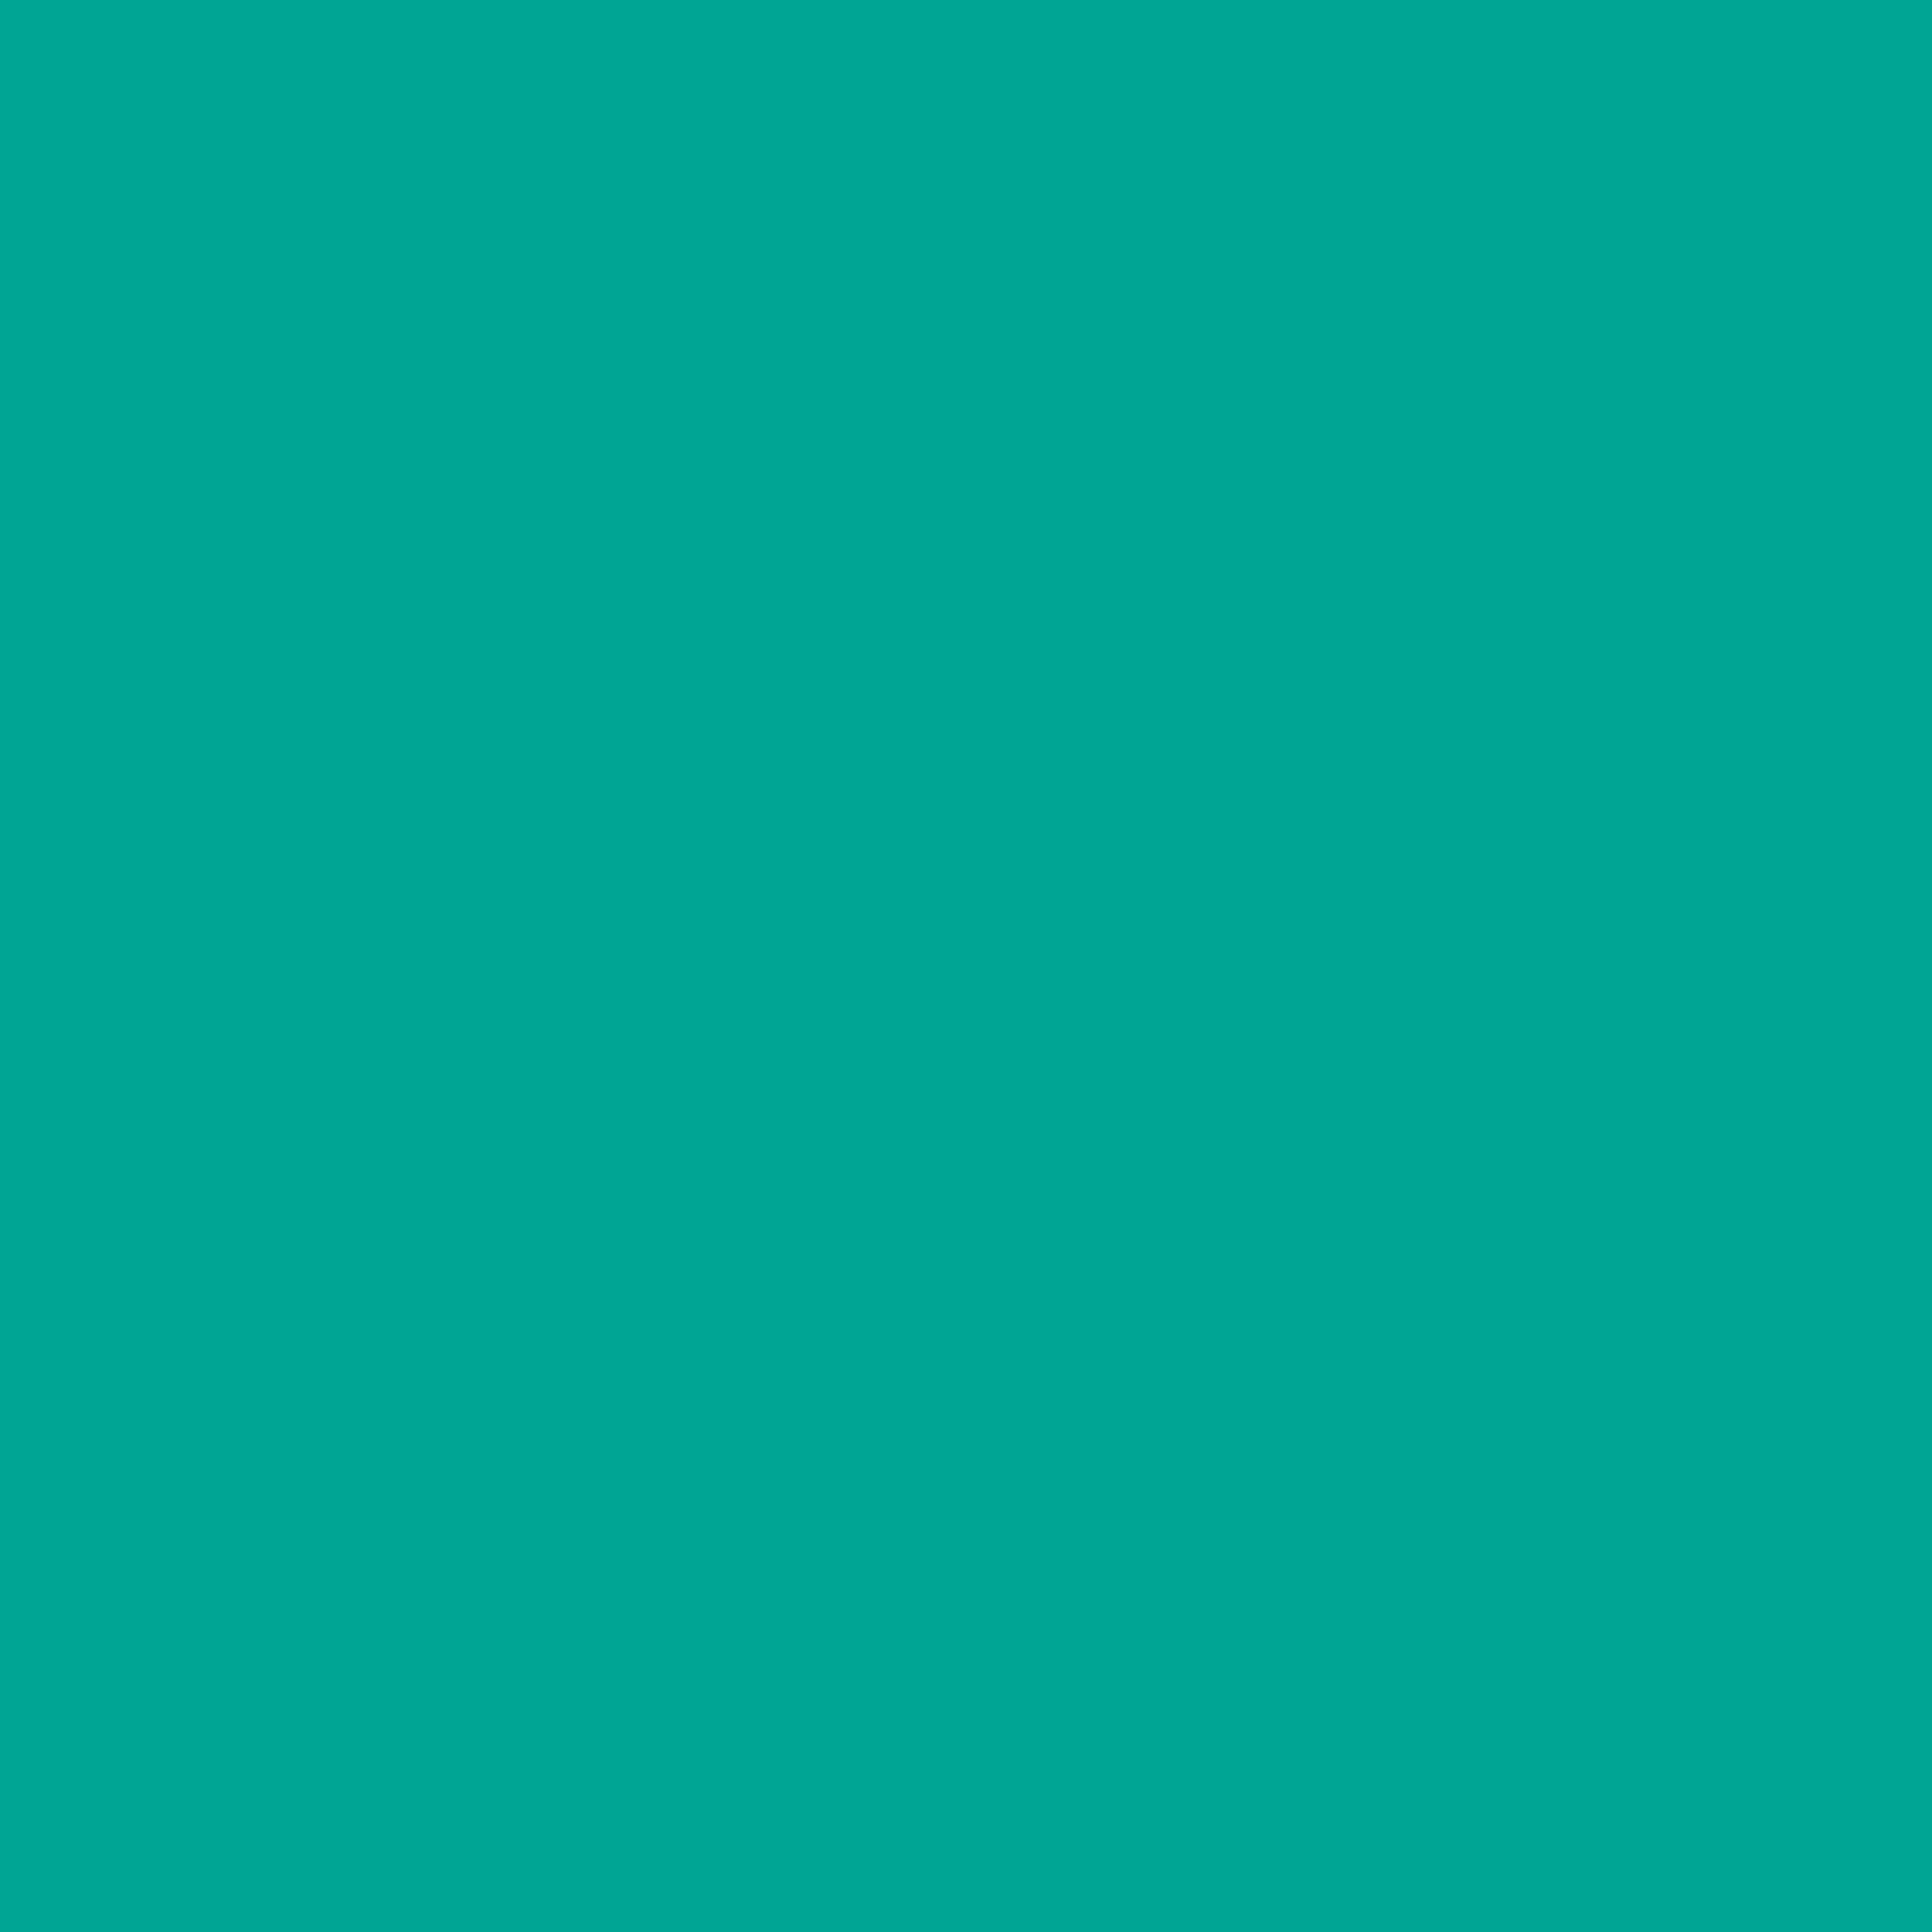 2048x2048 Persian Green Solid Color Background